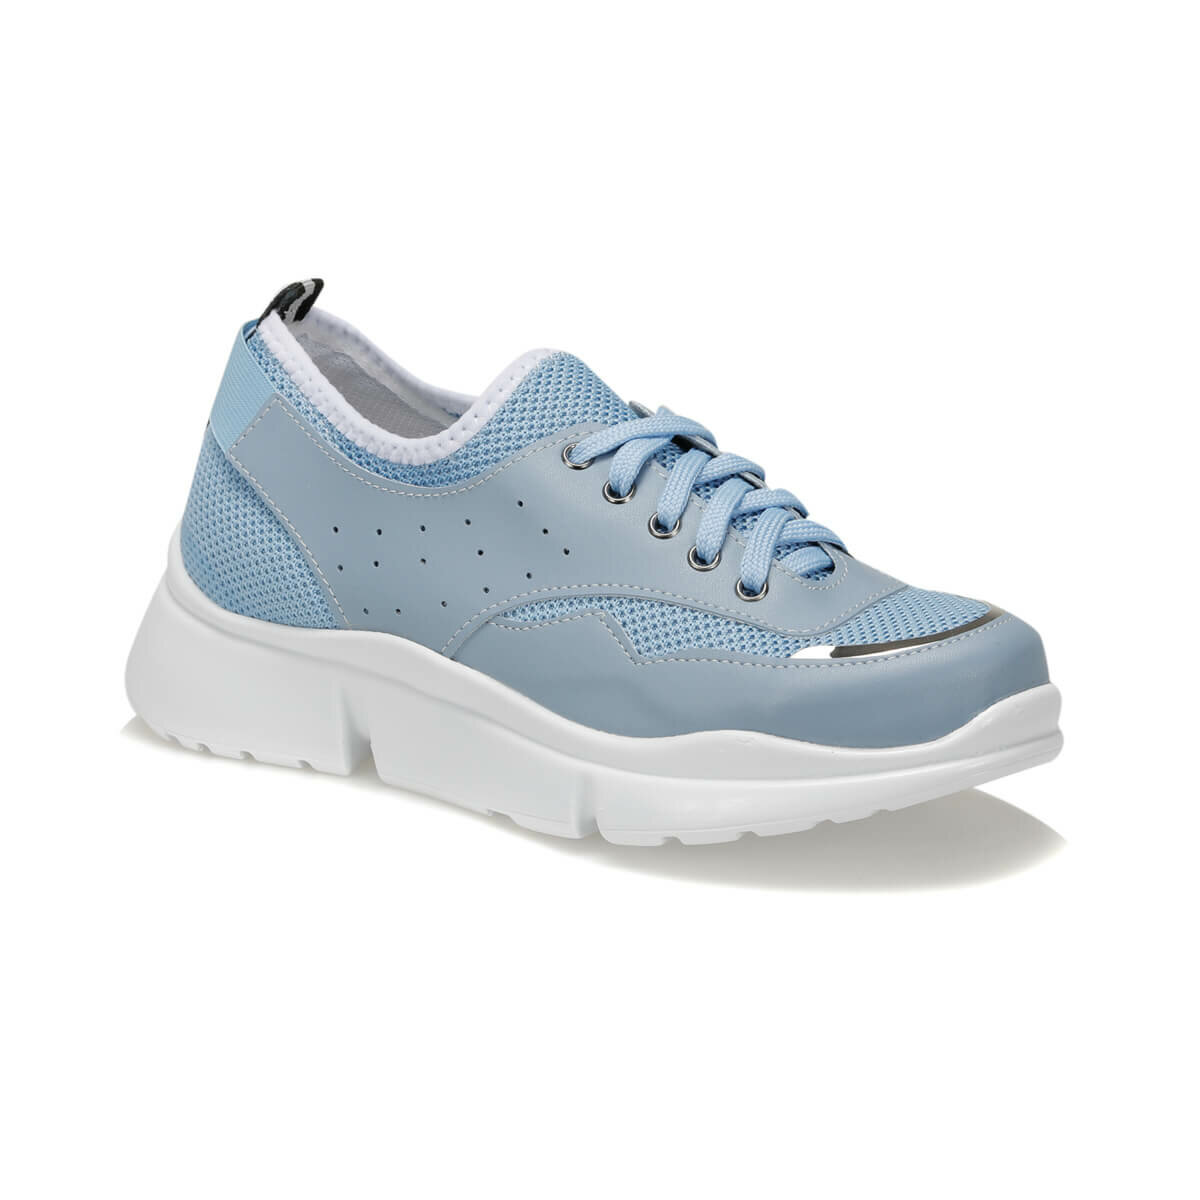 FLO MELTEM67Z SKIN Blue Women 'S Sneaker Shoes BUTIGO